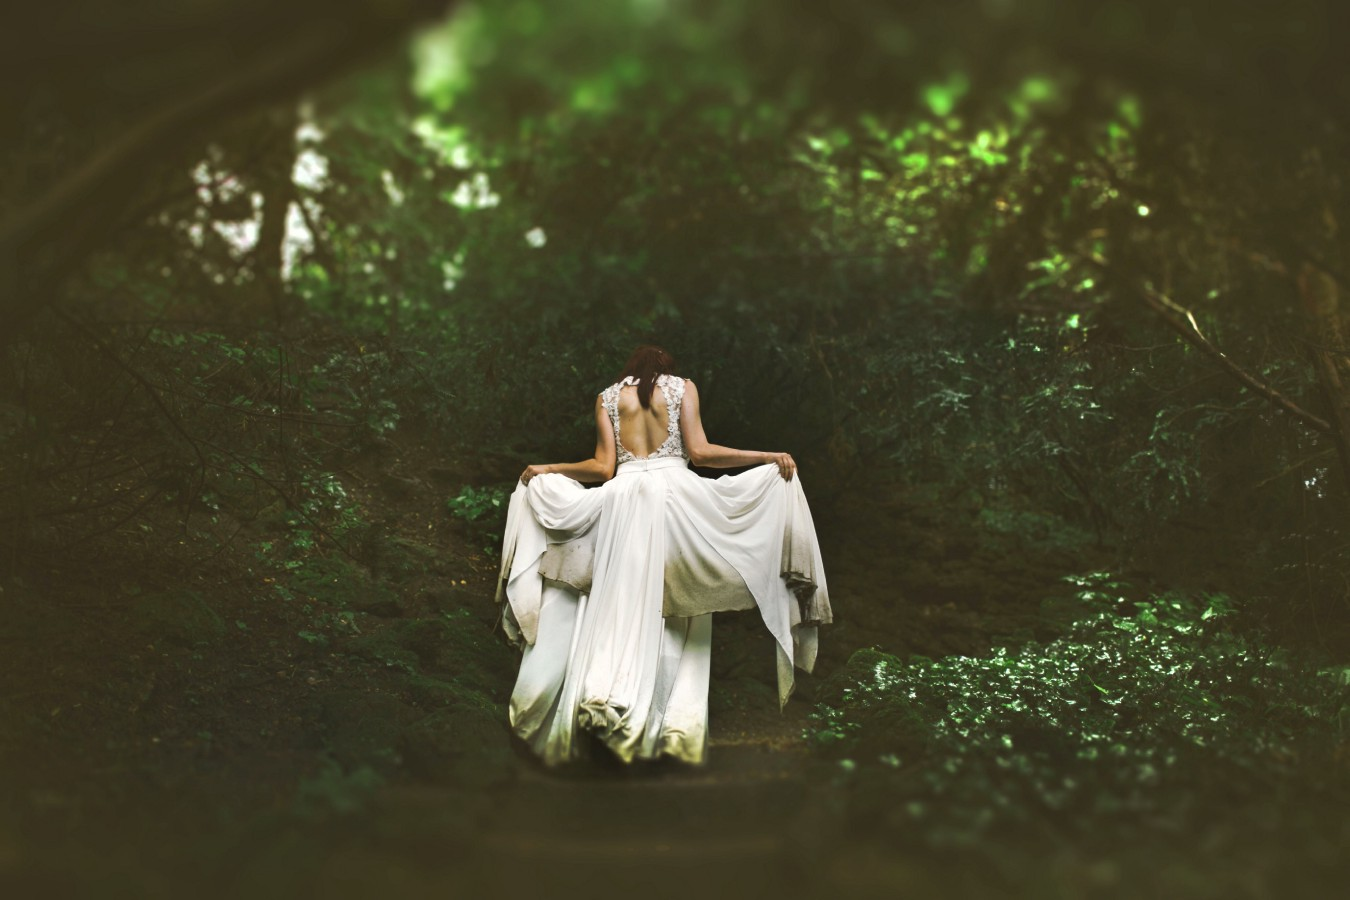 5 Reasons Why We Need More Fairy Tales and Fables in Our Life